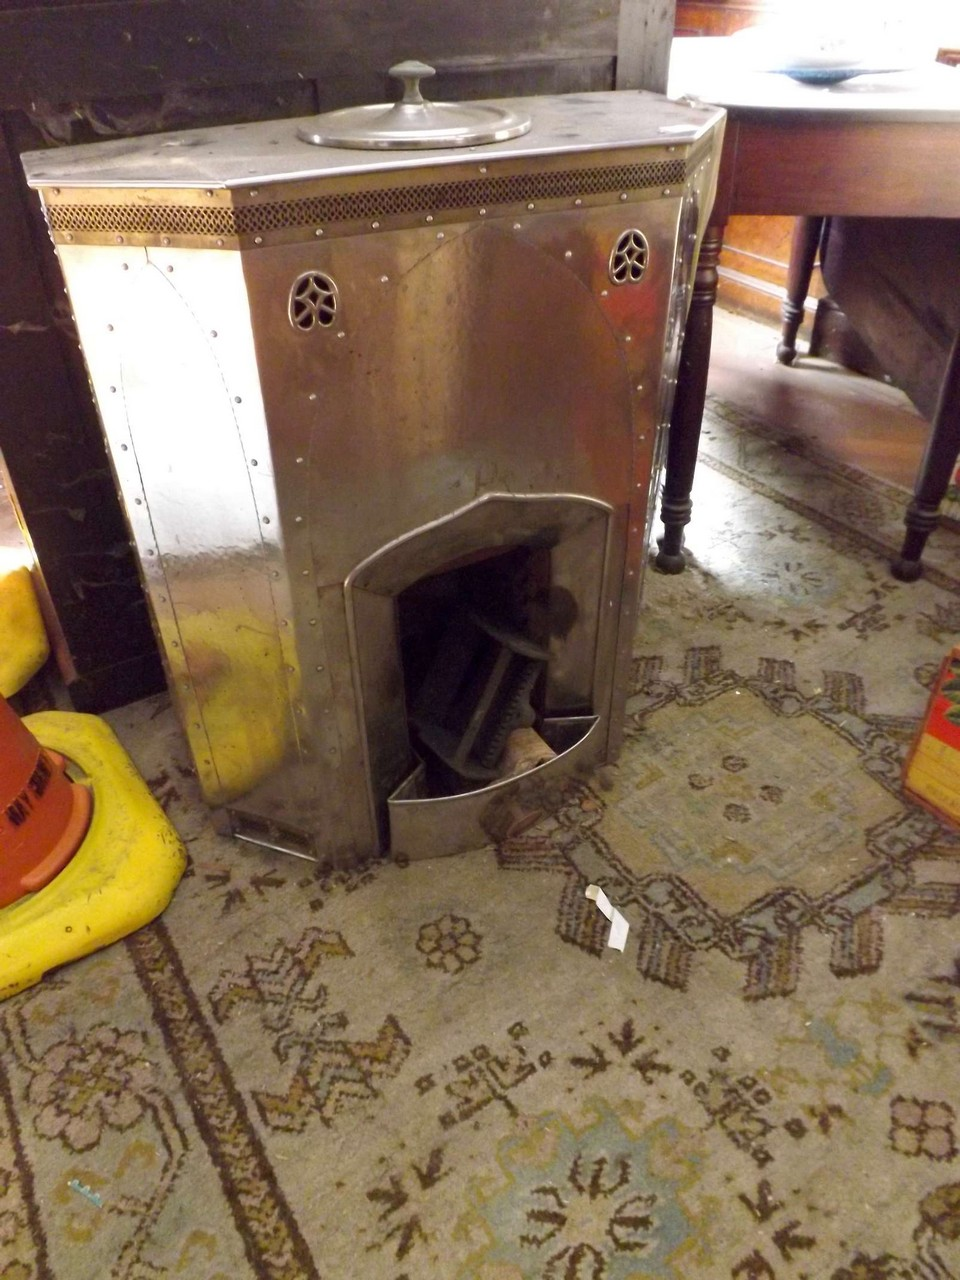 An Art Deco style chrome solid fuel burner being